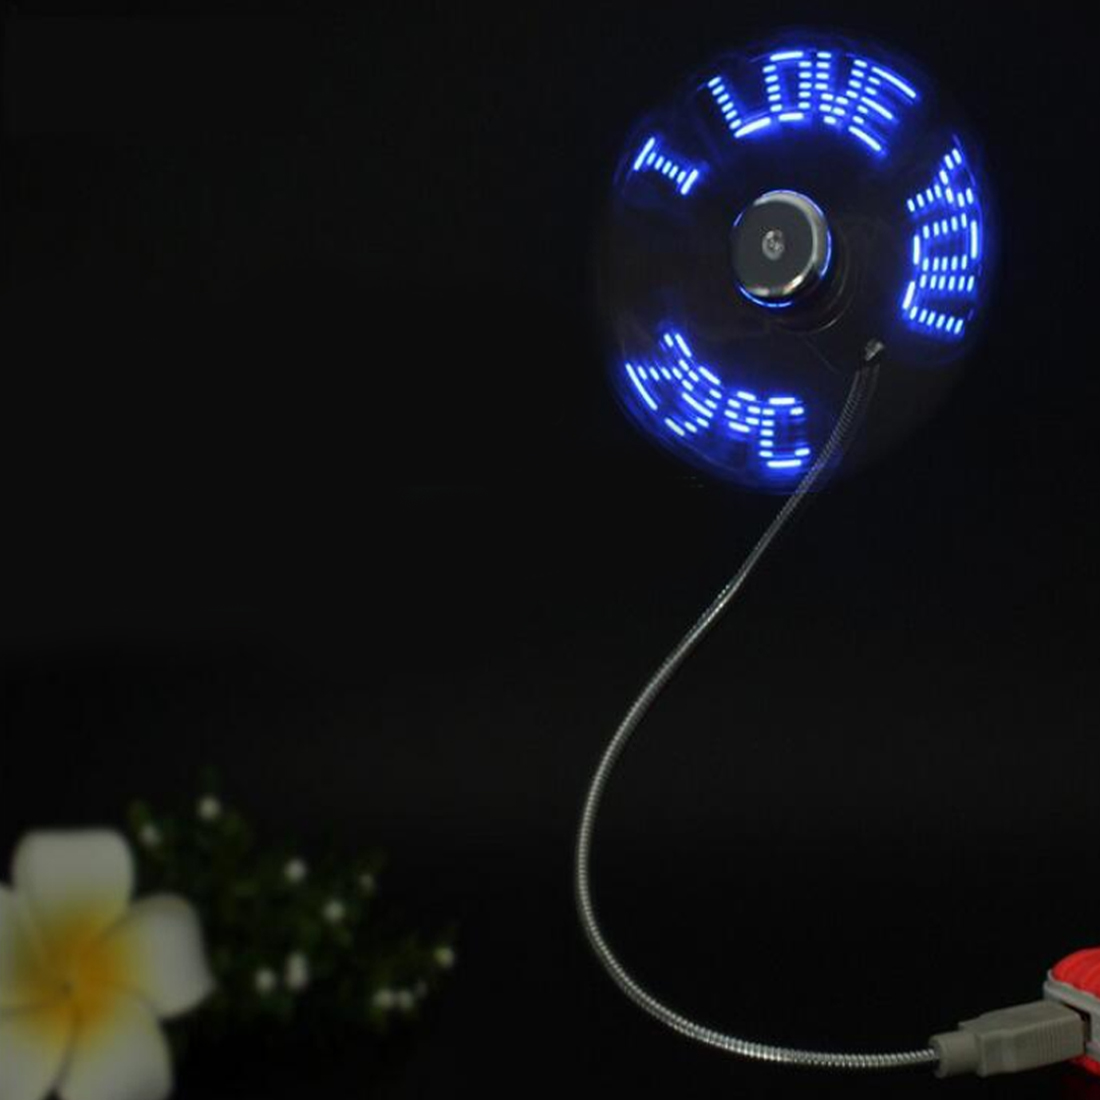 Etmakit Mini Usb Fan Gadgets Flexible Gooseneck Led Light Usb Cooling Flashing Temperature Display F lucog mini usb fan with led flashing light gooseneck cool time clock display usb flexible cooling fan for pc laptop notebook